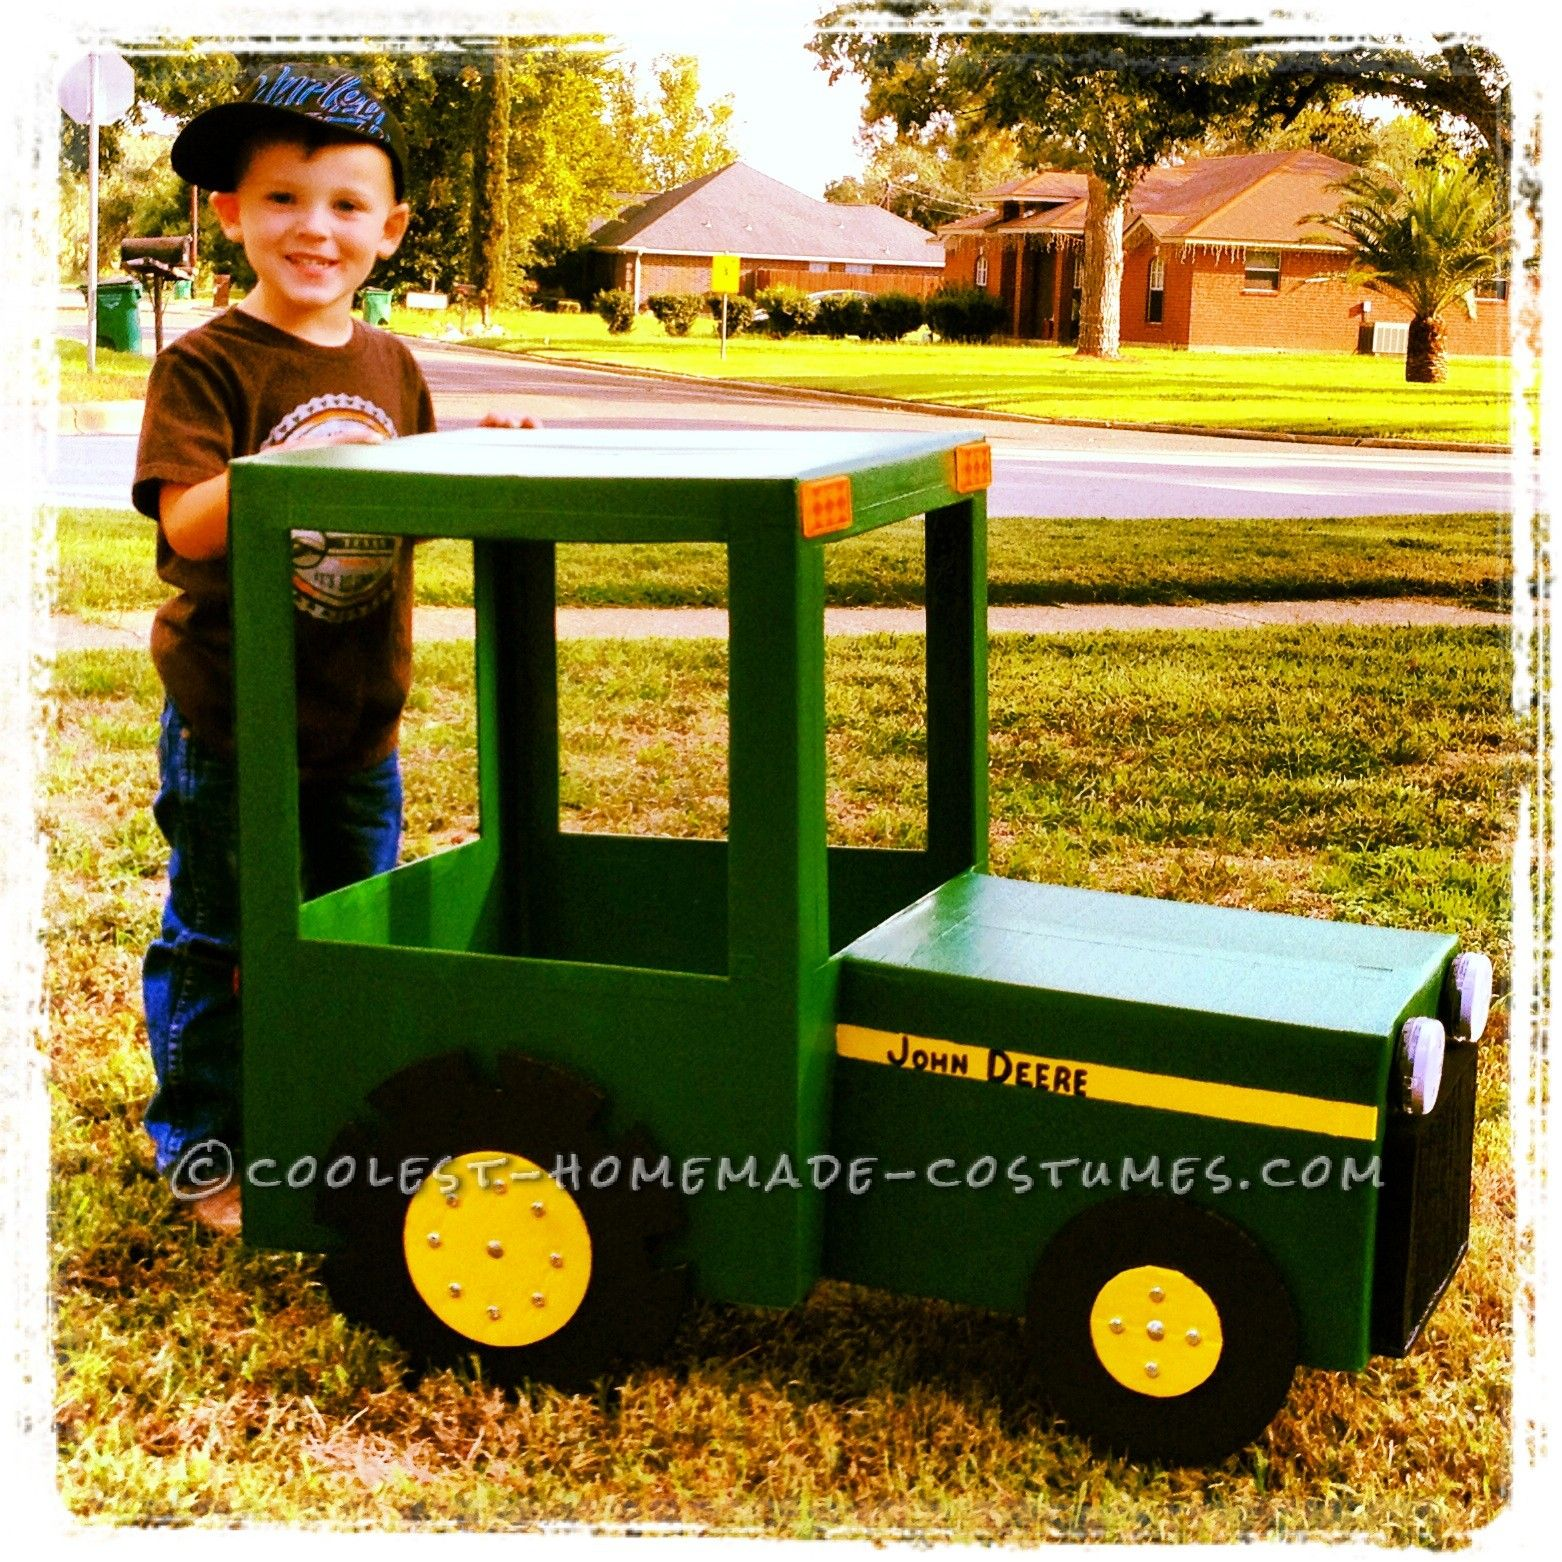 Coolest John Deere Tractor Costume for 4 Year Old Boy